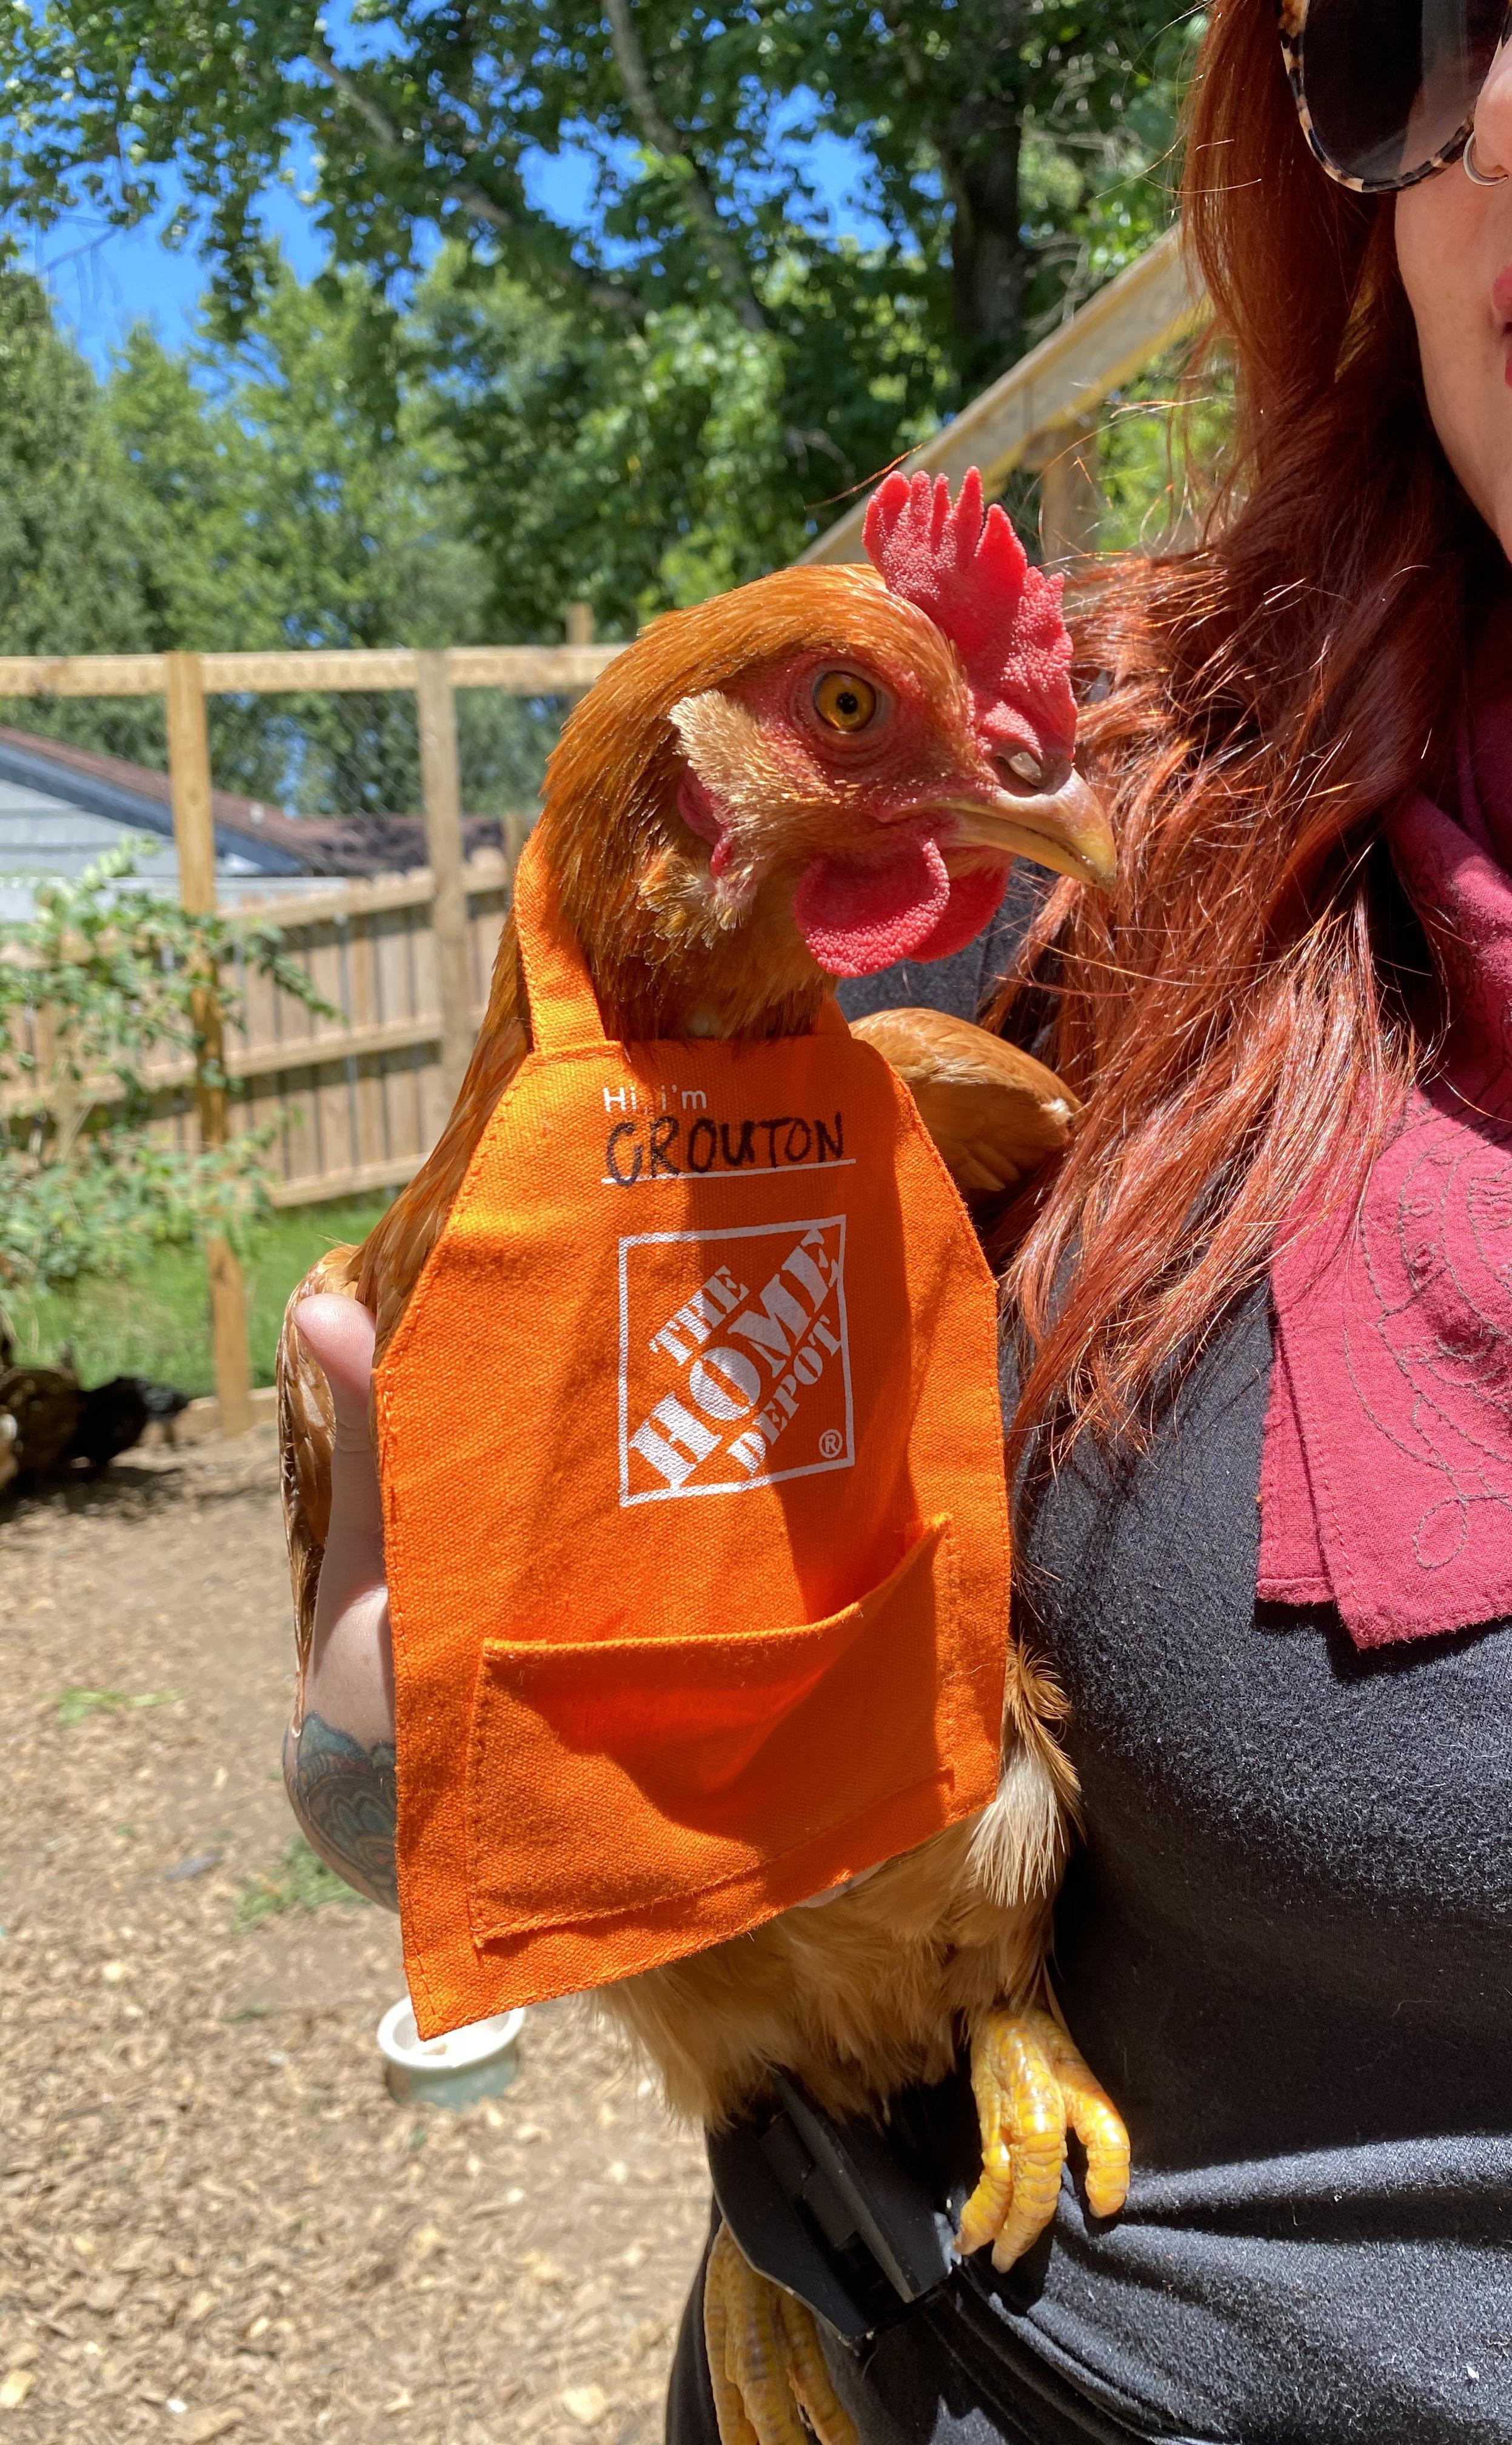 Home Depot gift card aprons fit chickens